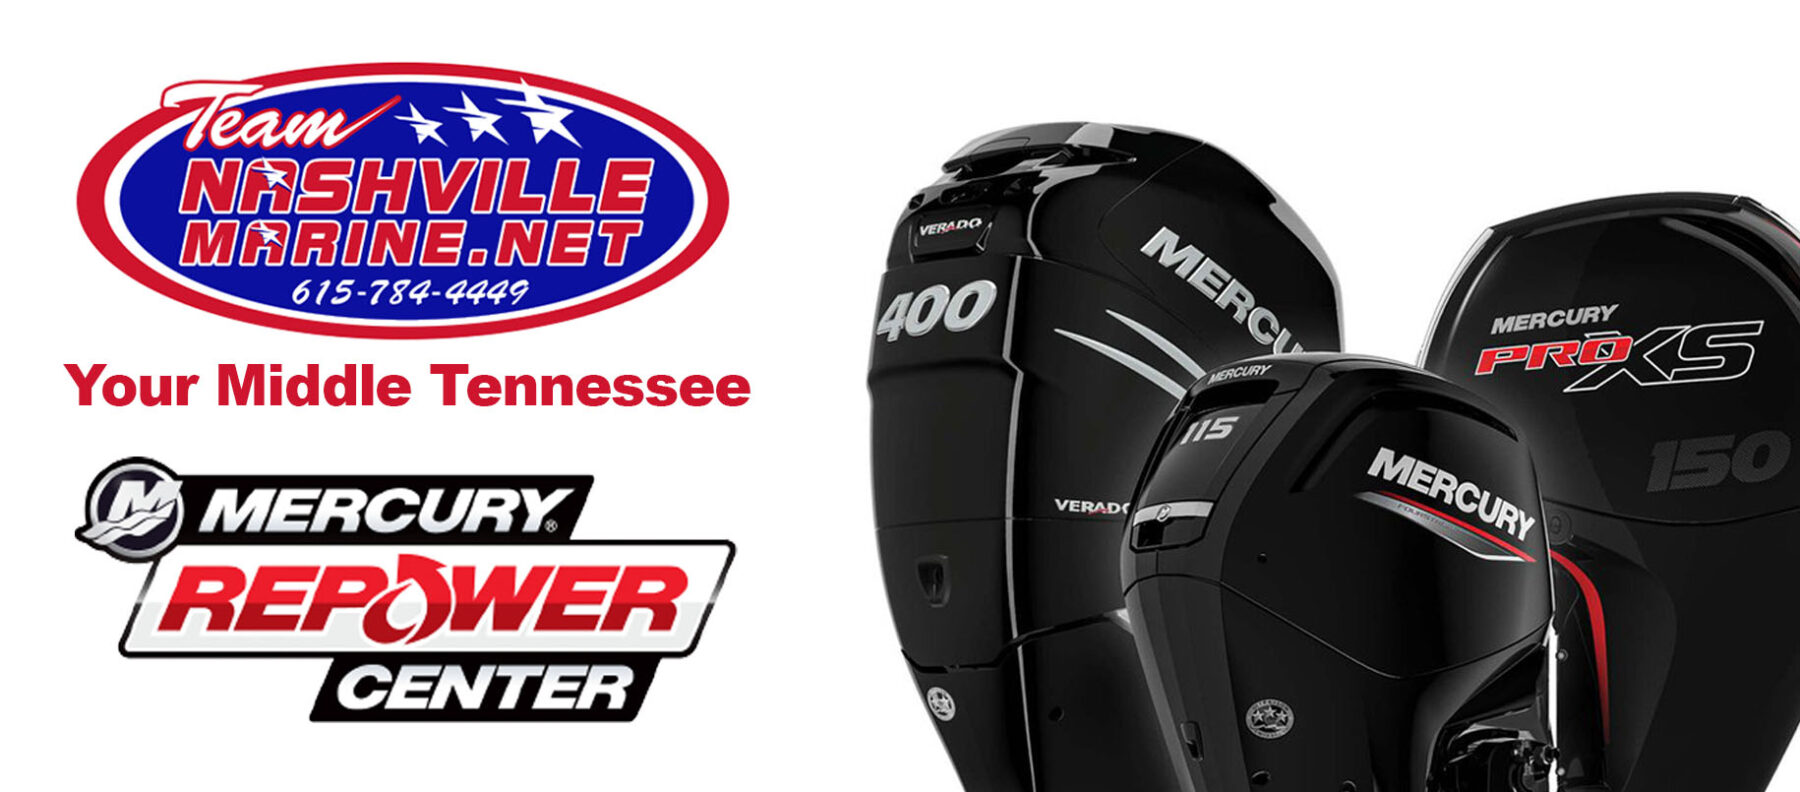 NashvilleMarine.net-Mercury Motor Repower Center